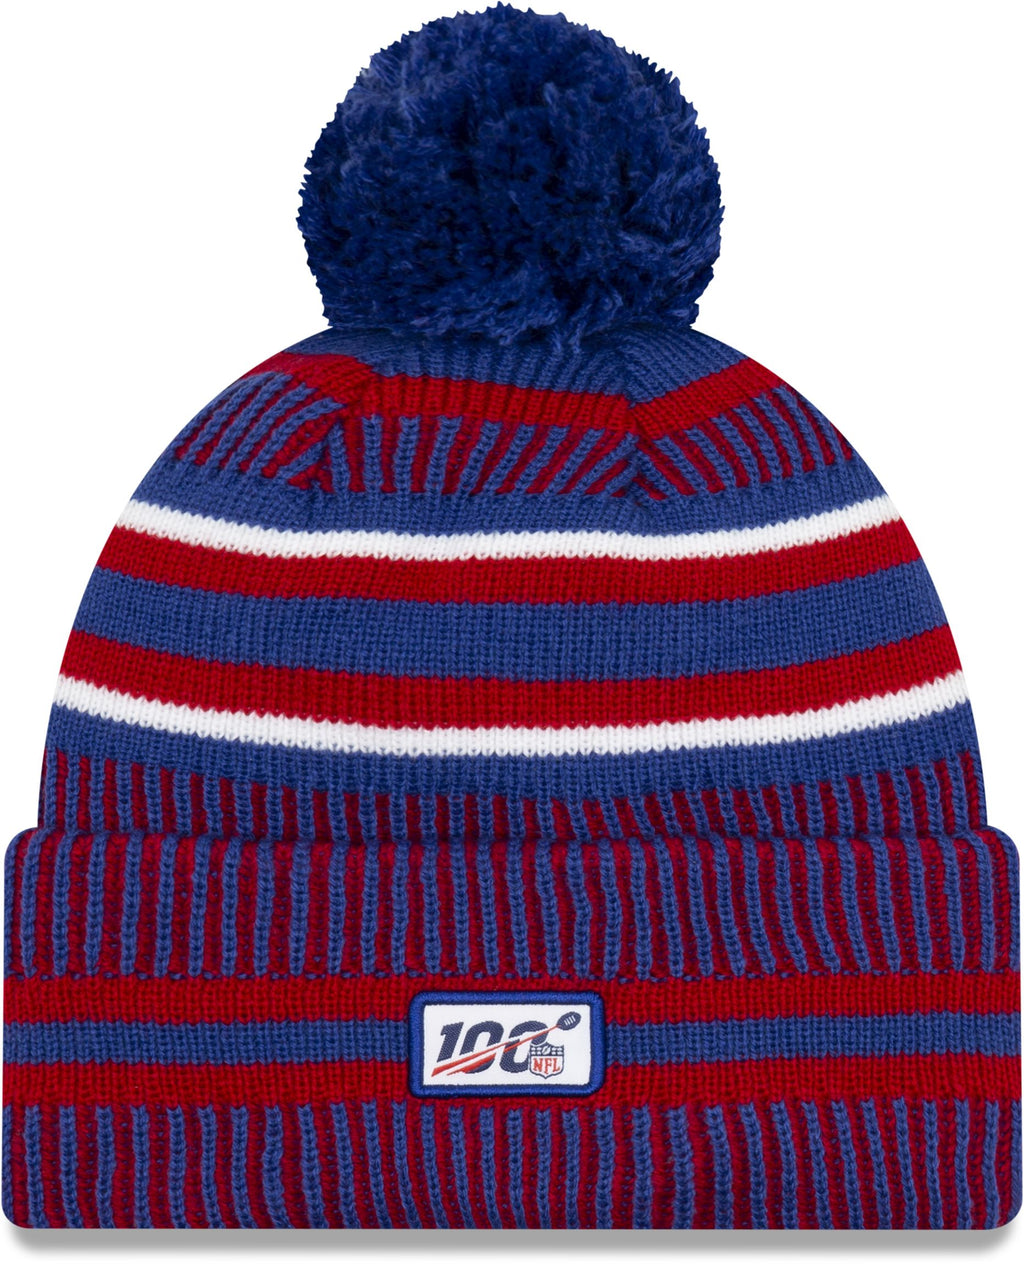 New Era ONF19 Cold Weather New York Giants Bobble Beanie Hat Blue